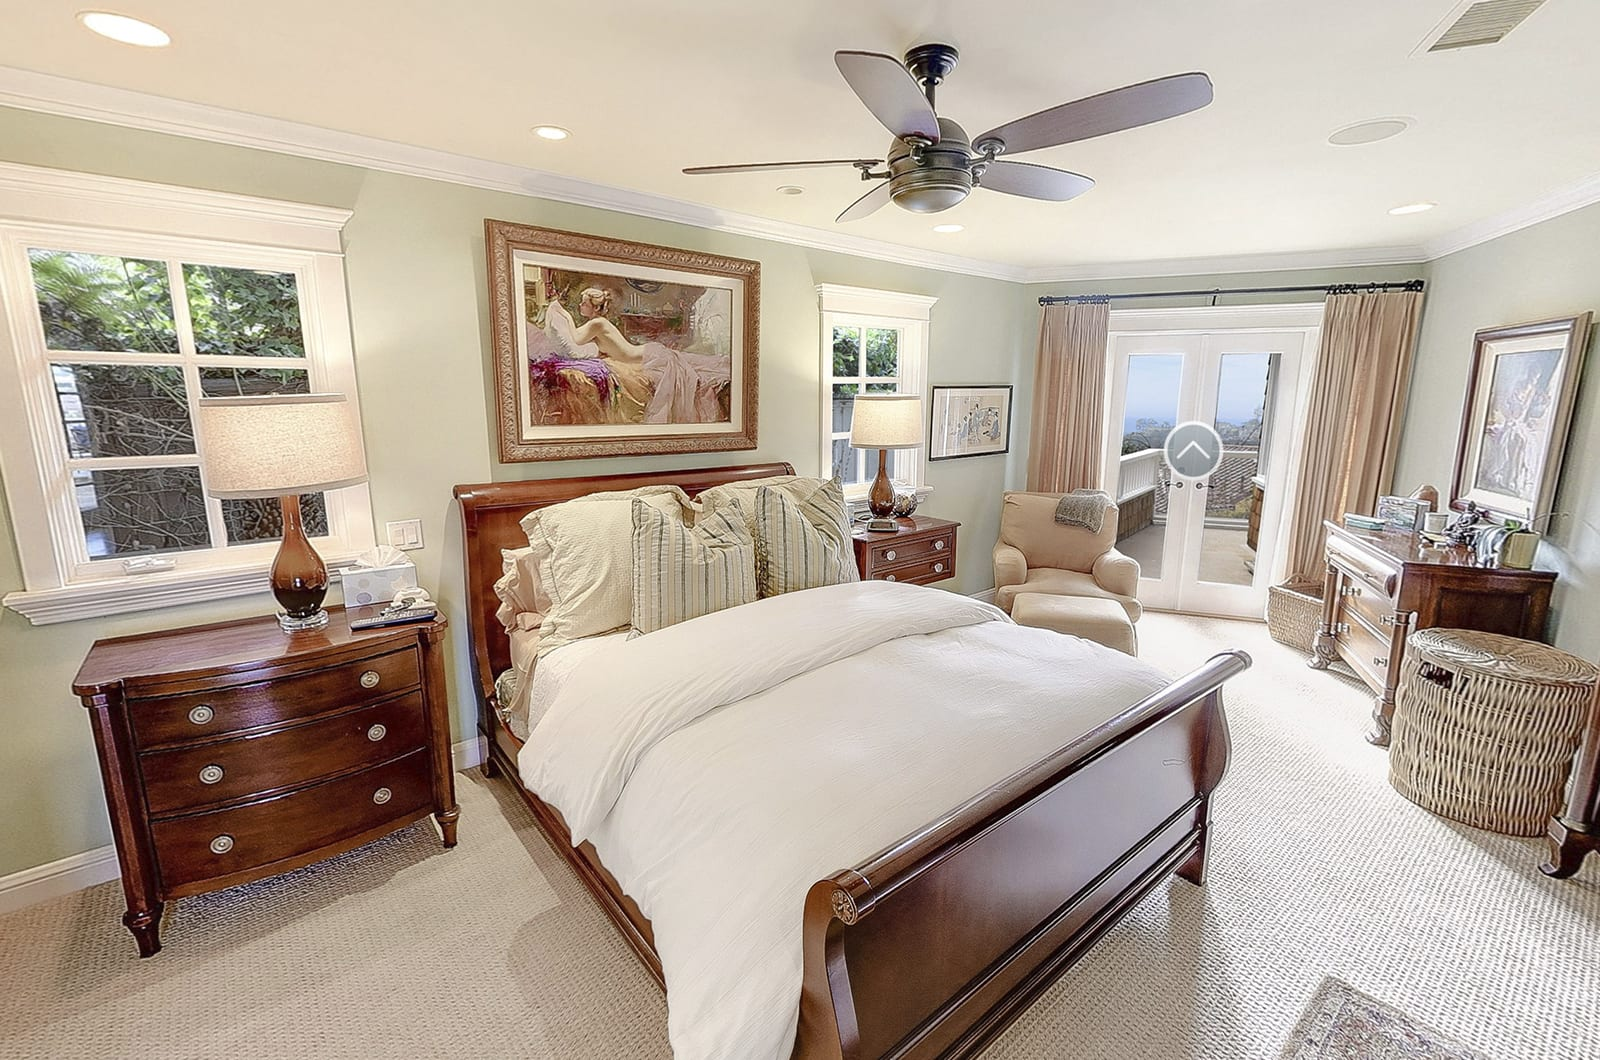 Featured Real Estate 360 Virtual Tour